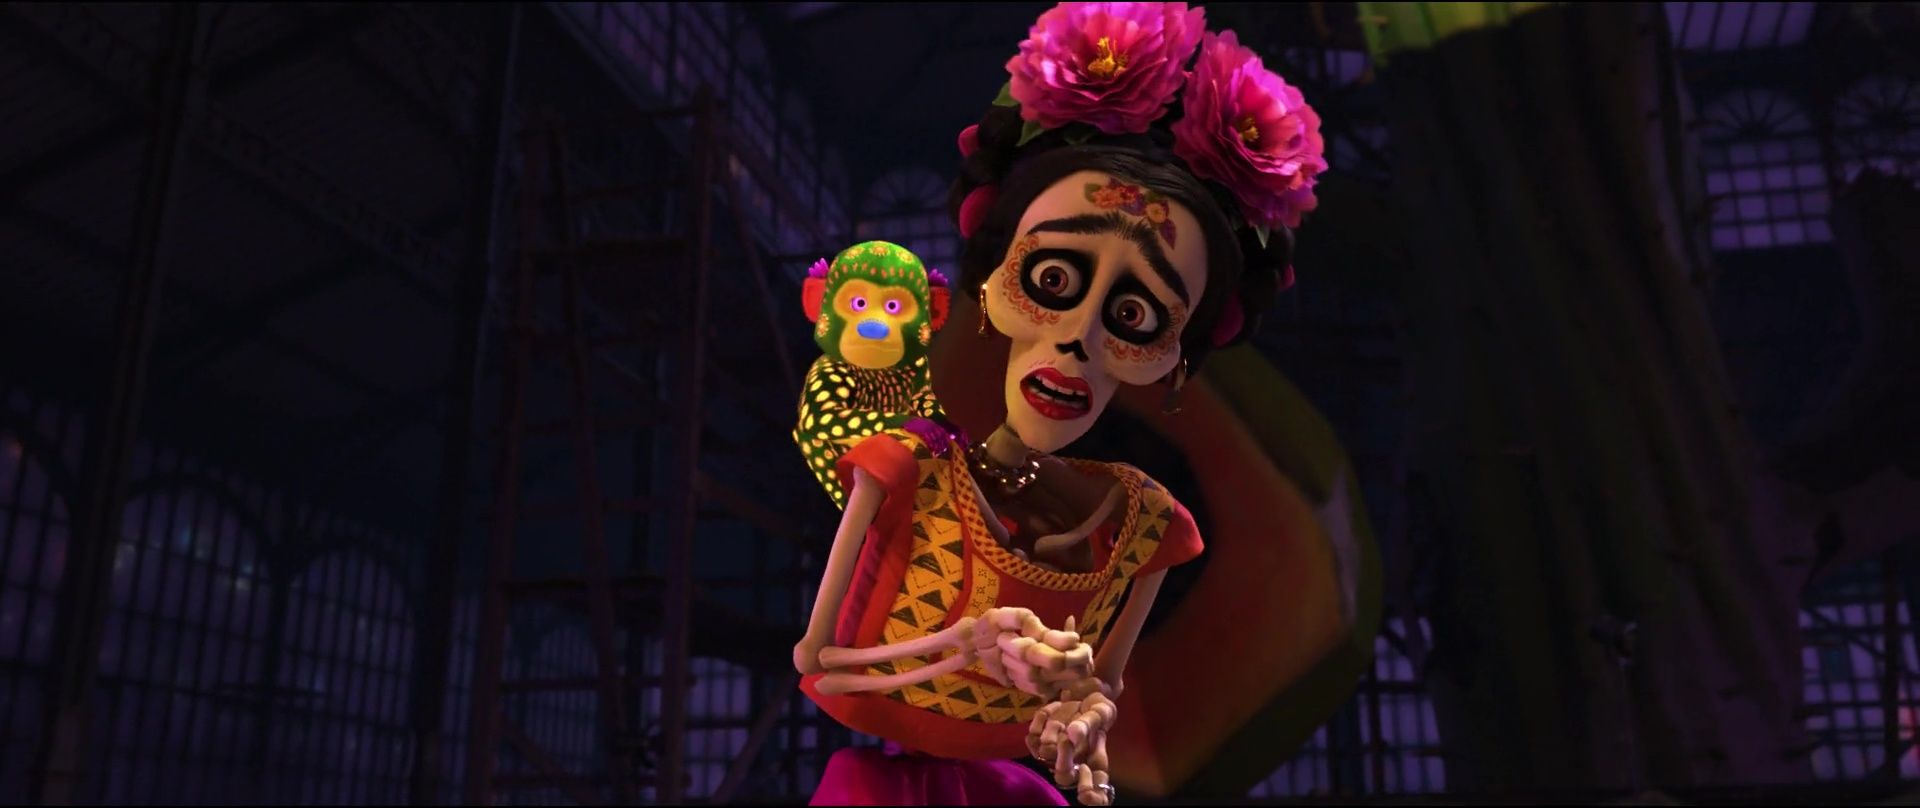 Pin Frida Kahlo Coco Images To Pinterest